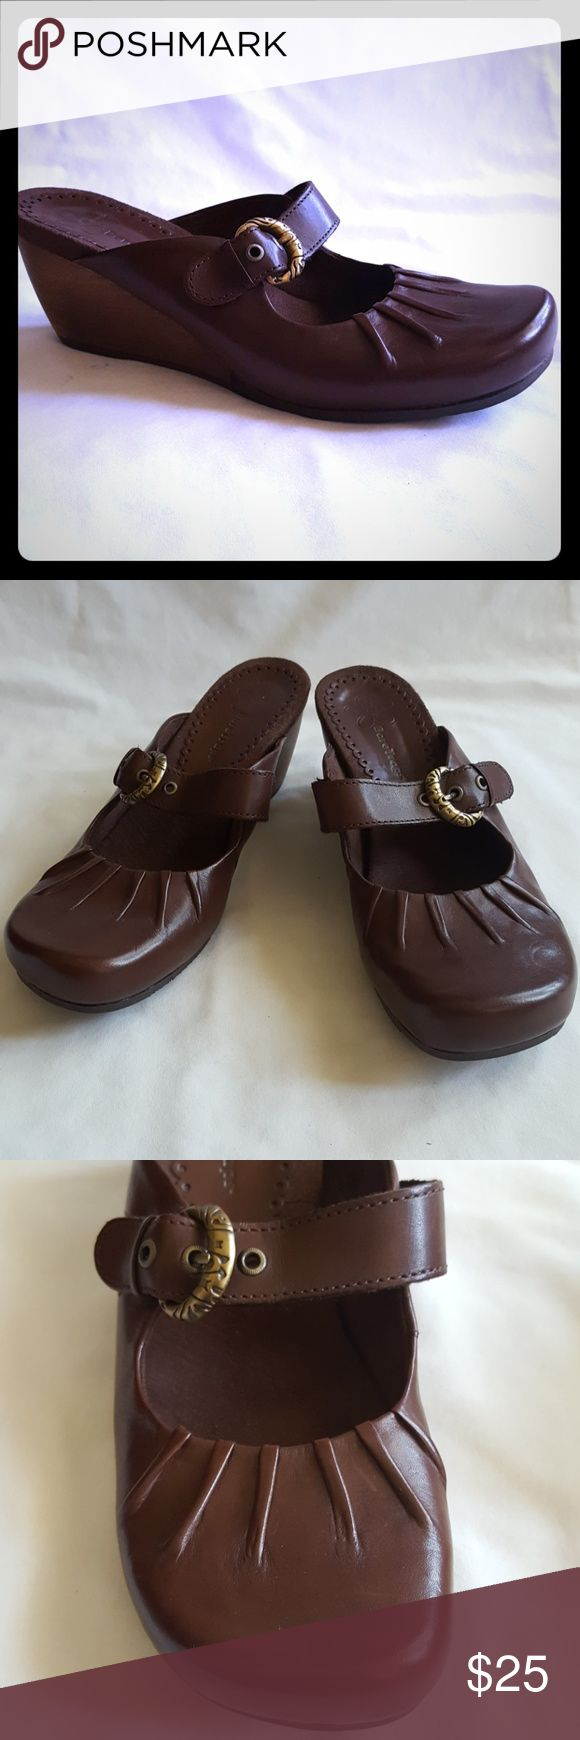 """NWOT Bare Traps Brown Leather Wooden Heel Wedge Cute brown leather Mary Jane mules style rounded toe wedges with unique wooden 2 3/4"""" wedge heel. Cushion brown suede-like insole. Style is """"Gayle"""" size 8 1/2.   New - without tags and box. Smoke free and pet free home. Bare Traps Shoes Wedges"""